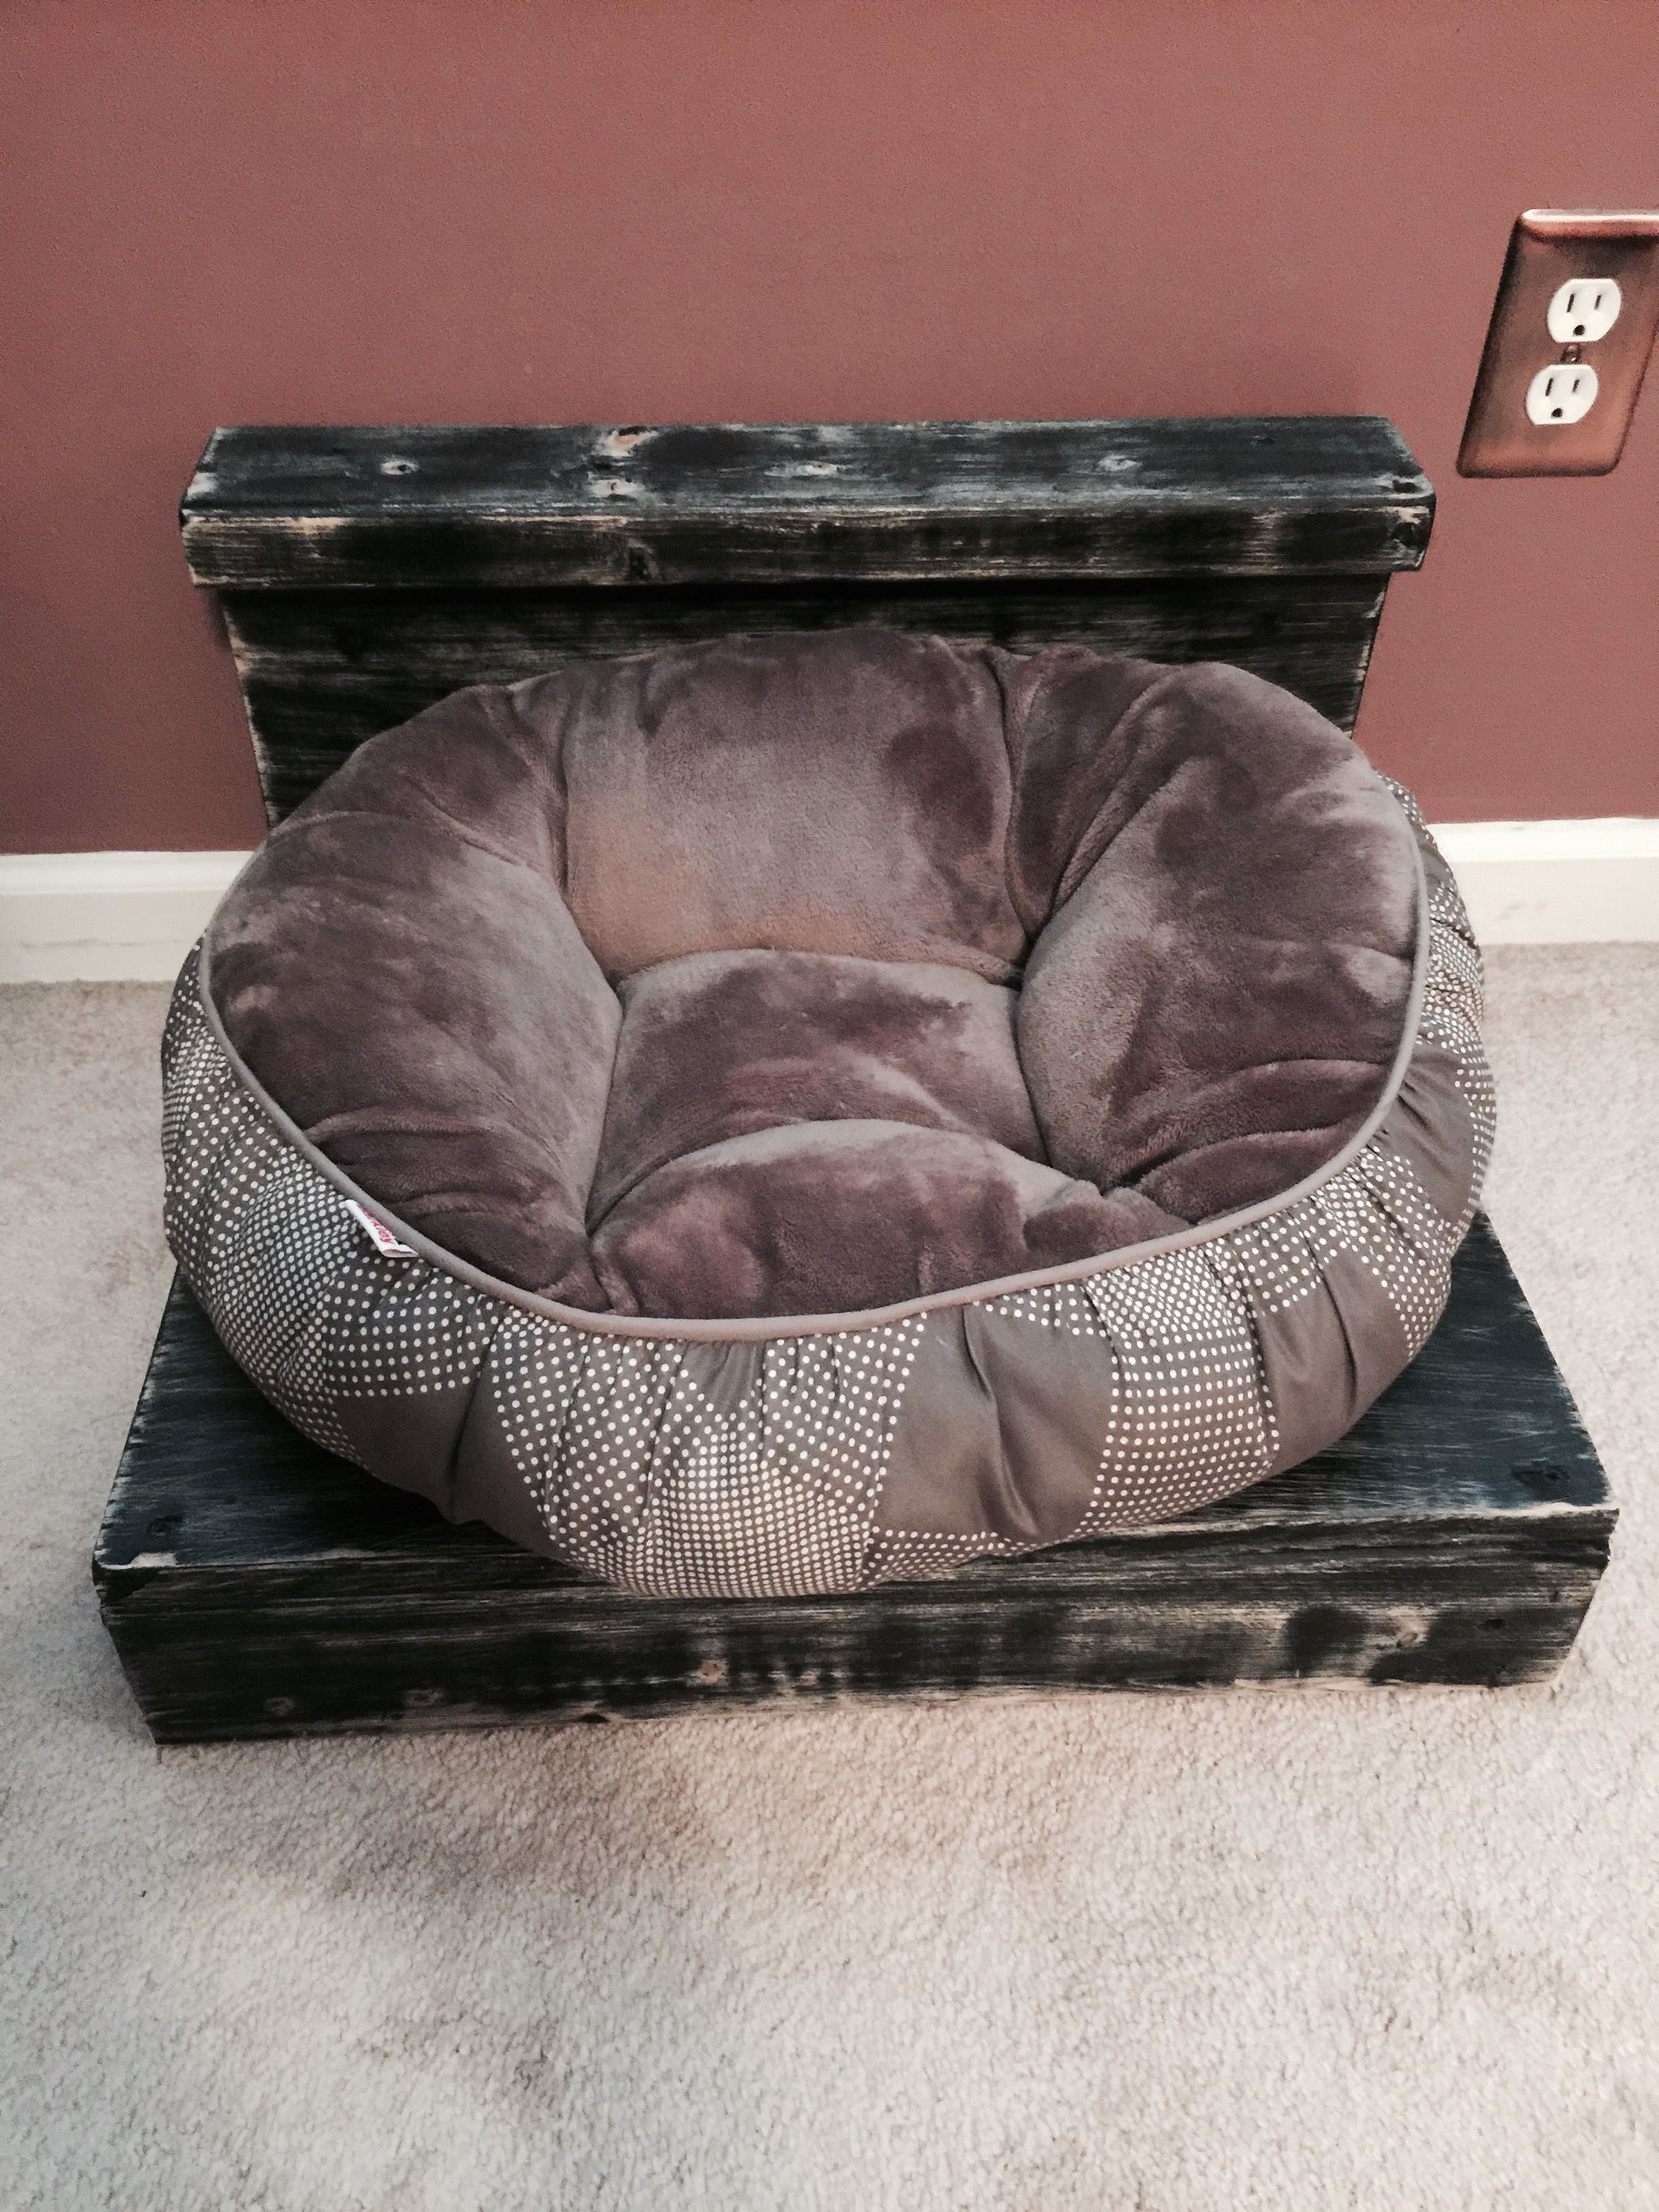 Tremendous Diy Dog Bed Made From 2X4S My Diy Builds Diy Dog Bed Inzonedesignstudio Interior Chair Design Inzonedesignstudiocom